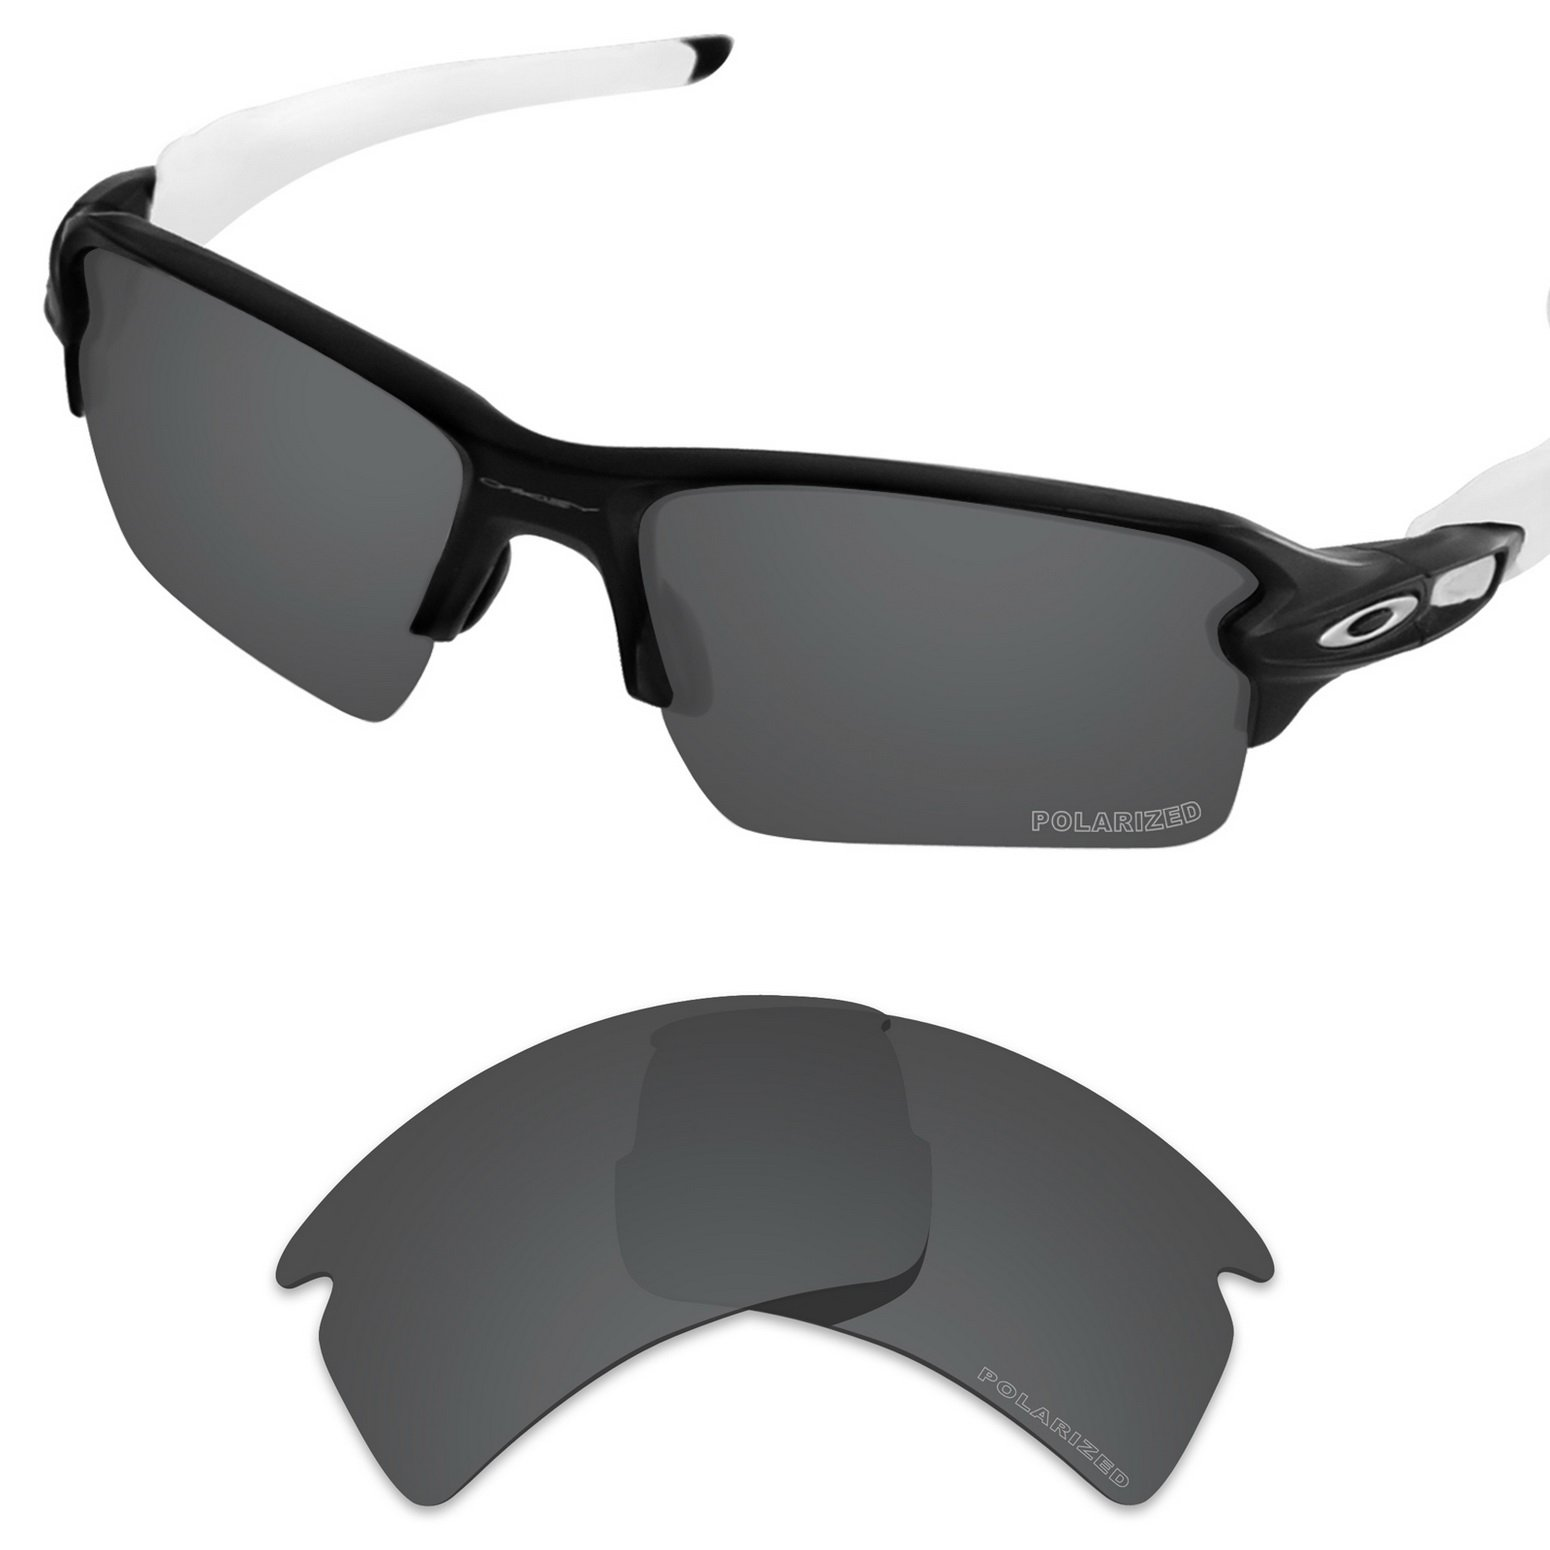 Tintart Performance Replacement Lenses for Oakley Flak 2.0 XL Sunglass Polarized Etched-Carbon Black